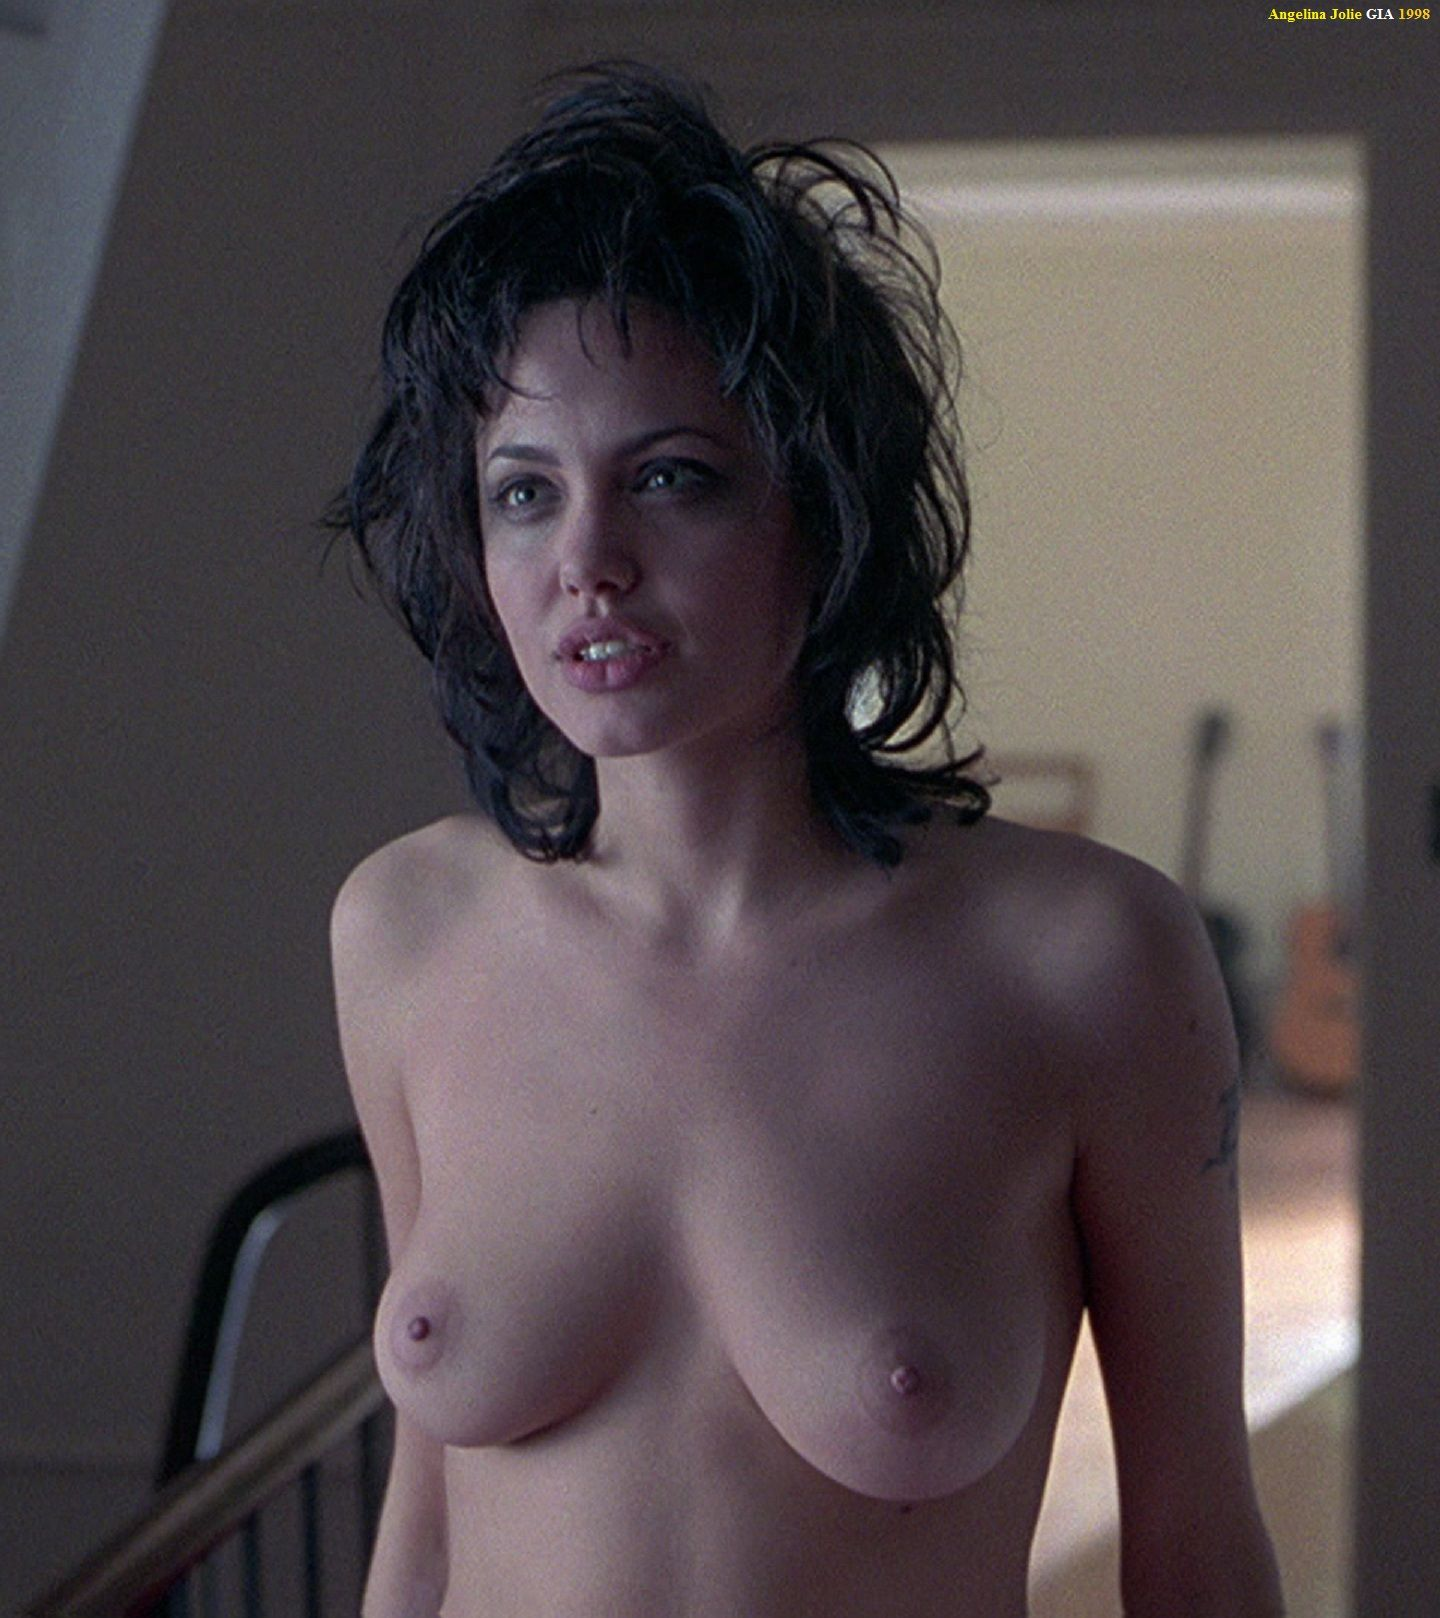 Angelina Jolie Porno Video angelina jolie real porn video - 23 new porn photos. comments: 3